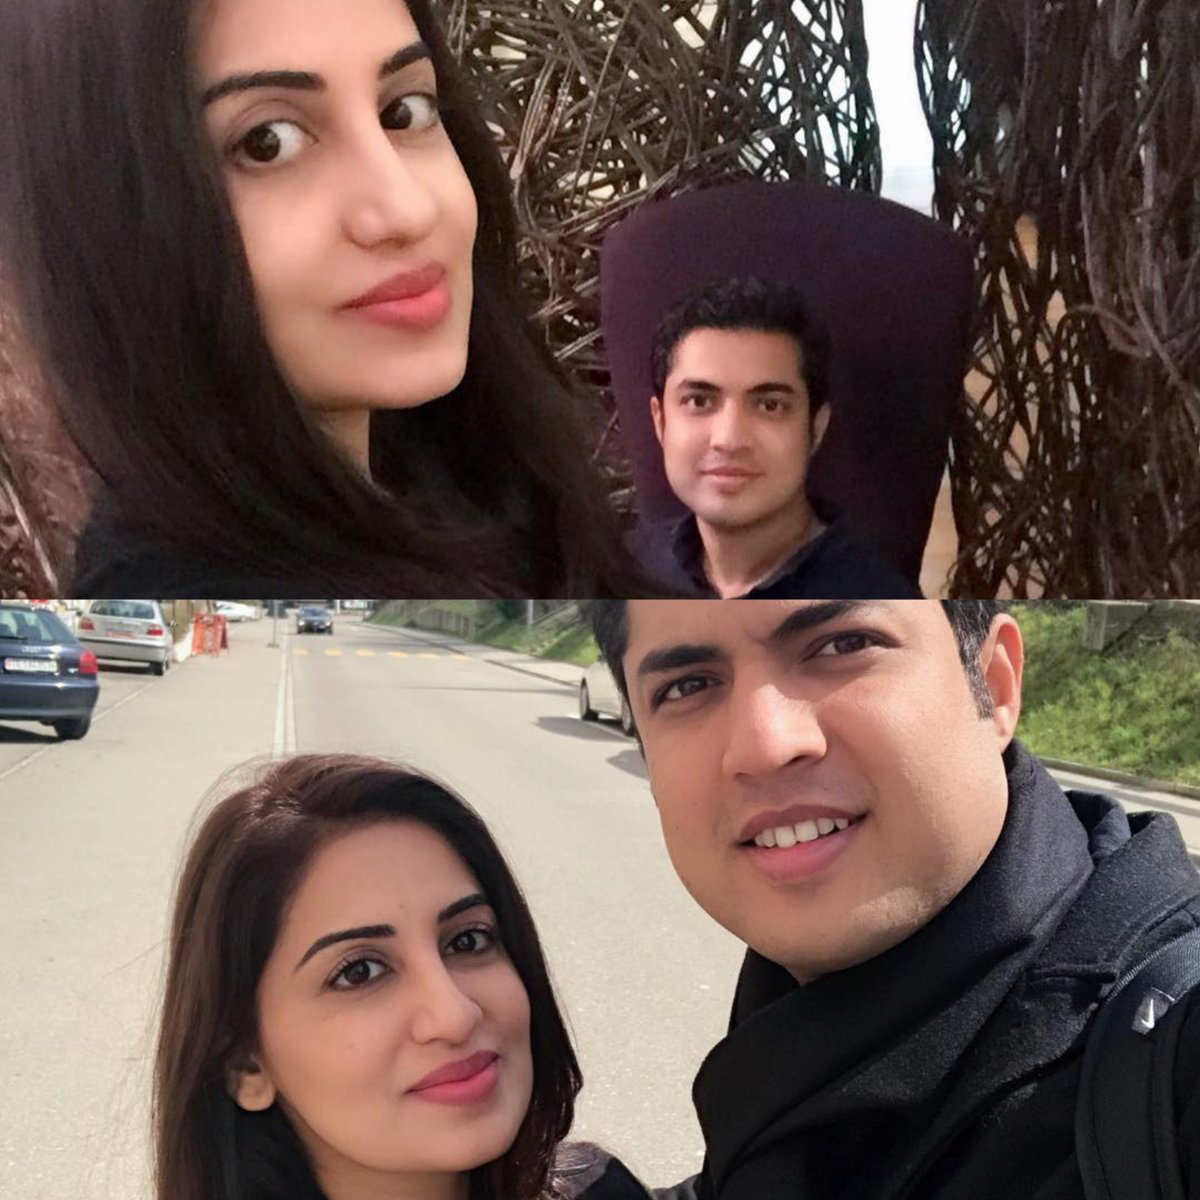 Let's vote! Who took a better selfie?  for @iqrarulhassan  for @fara_yousaf   #Throwback #Travel2018 #FaraIqrar #Iqrarulhassanpic.twitter.com/5OTbVihJAN